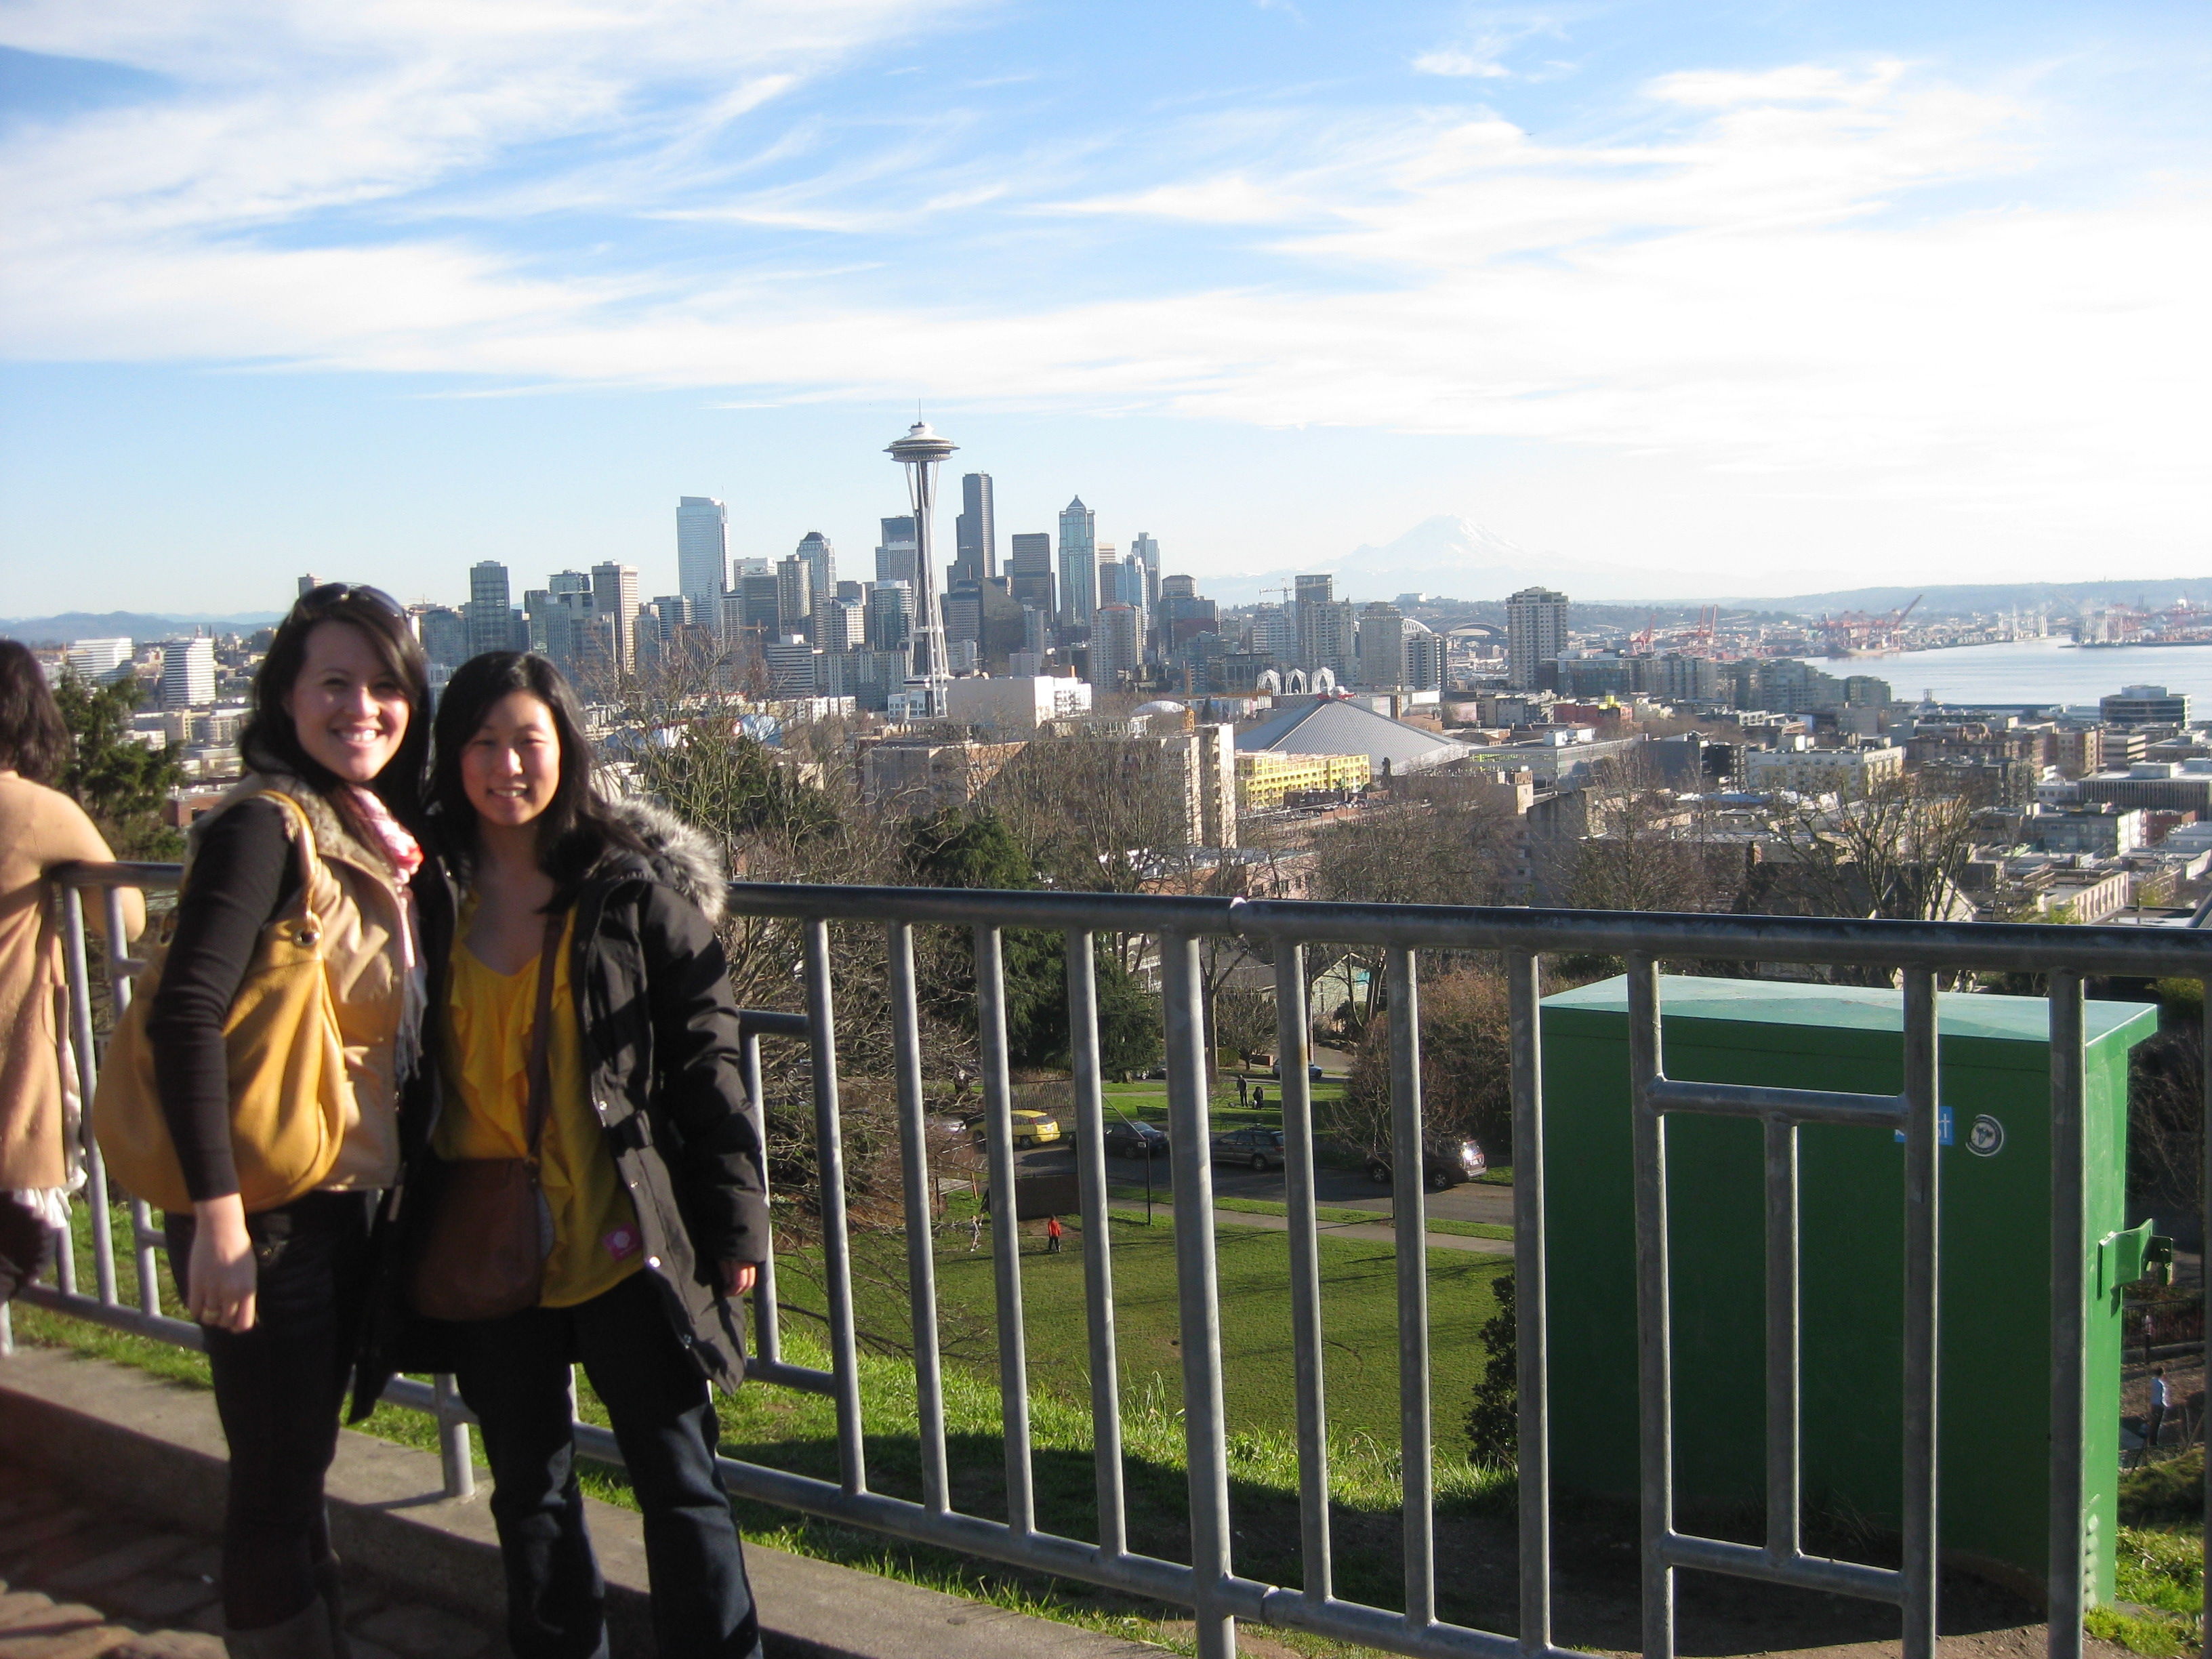 visiting seattle!